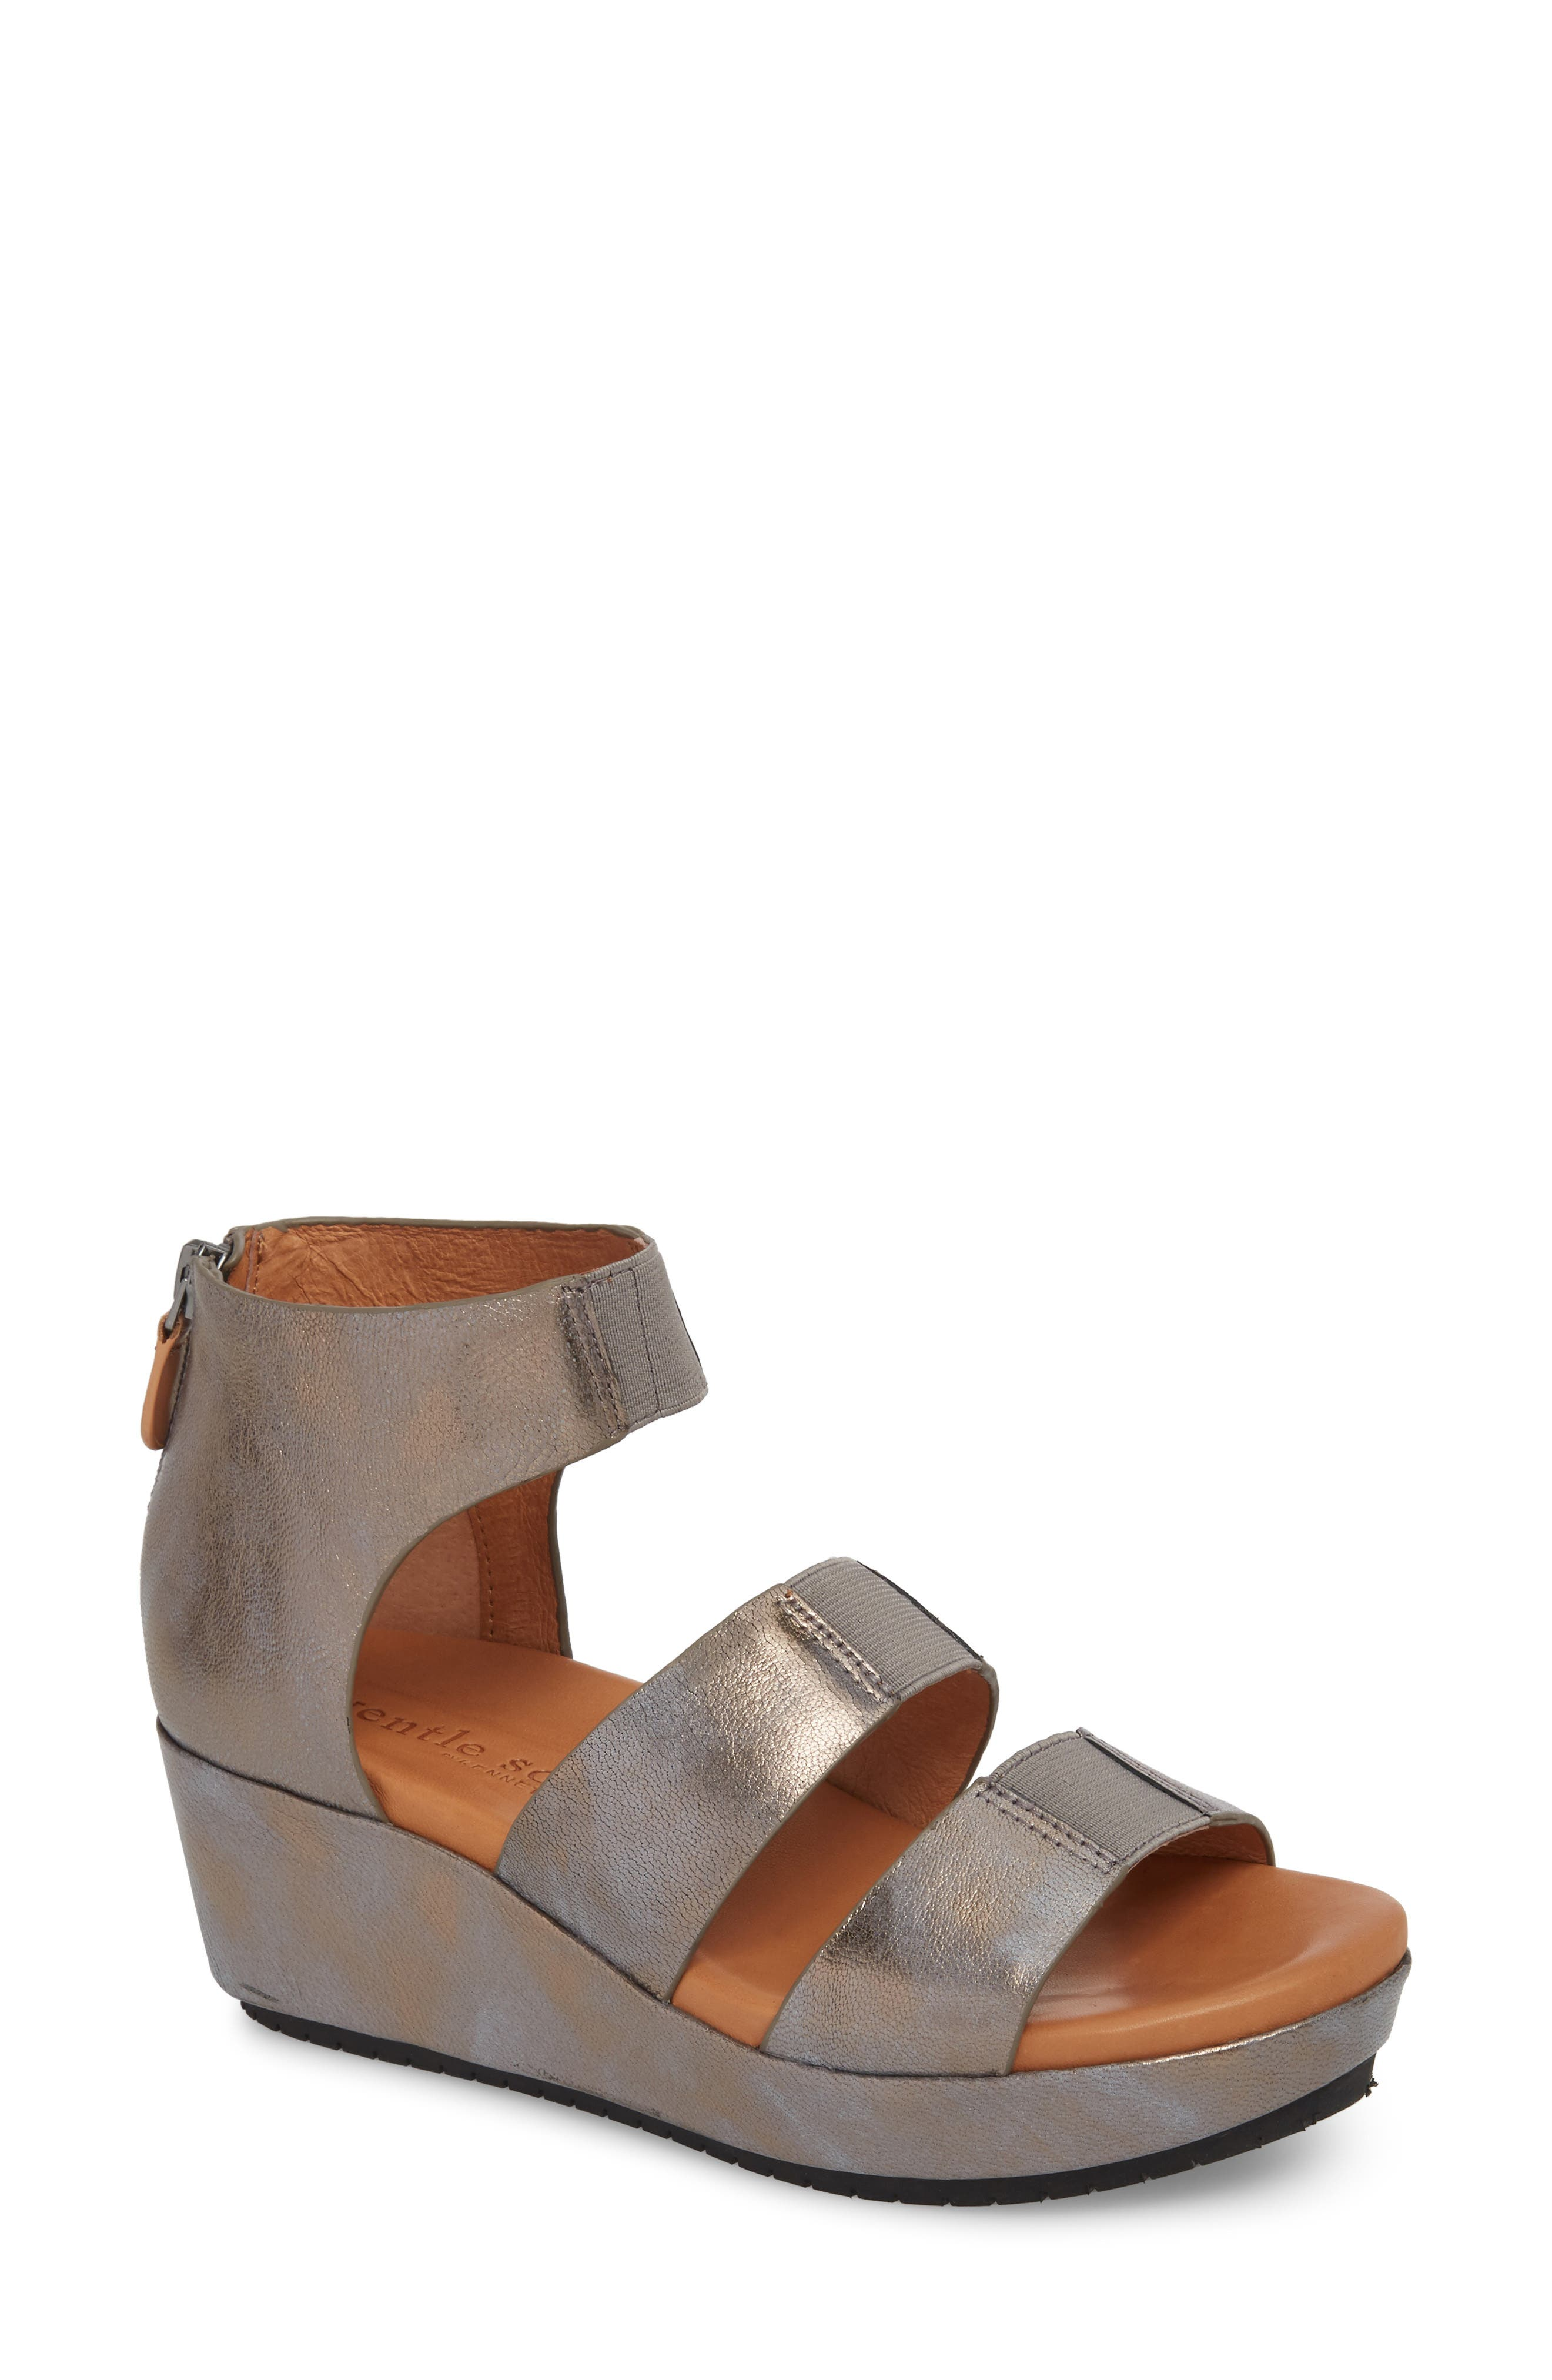 GENTLE SOULS BY KENNETH COLE, Milena Wedge Sandal, Main thumbnail 1, color, PEWTER METALLIC LEATHER